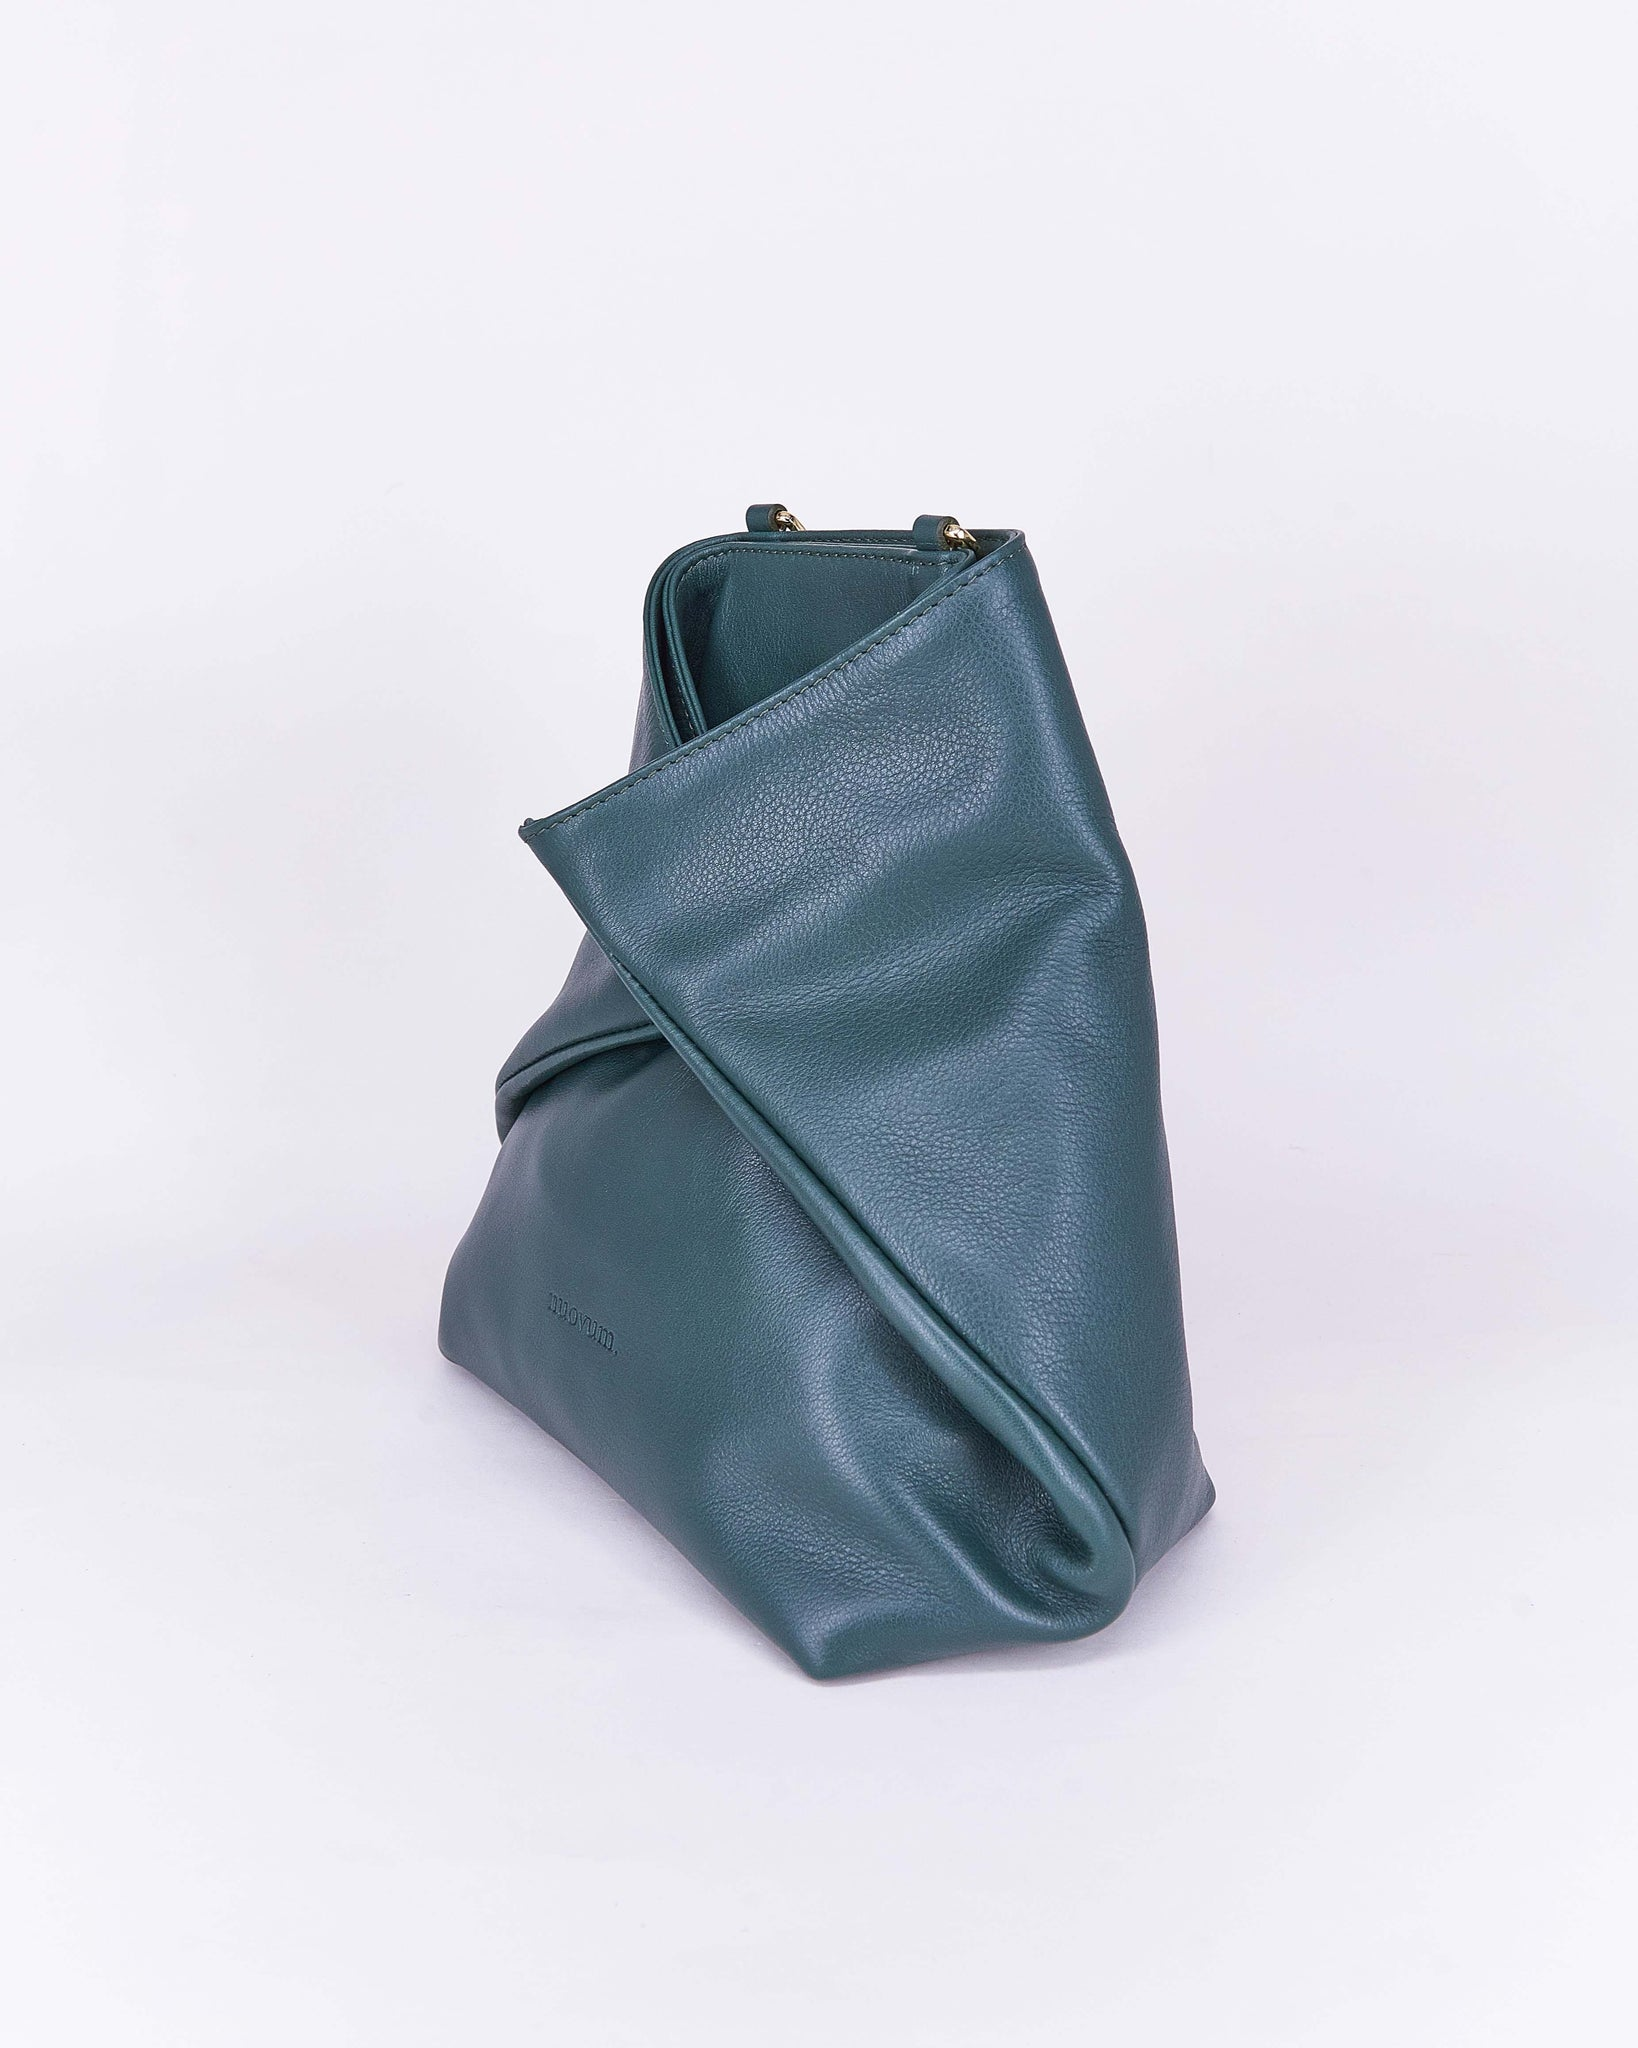 Bigcandy-Forest-Side-Leather-Bag-Nuovum-Localdesigners-Handmade-Madeinbarcelona